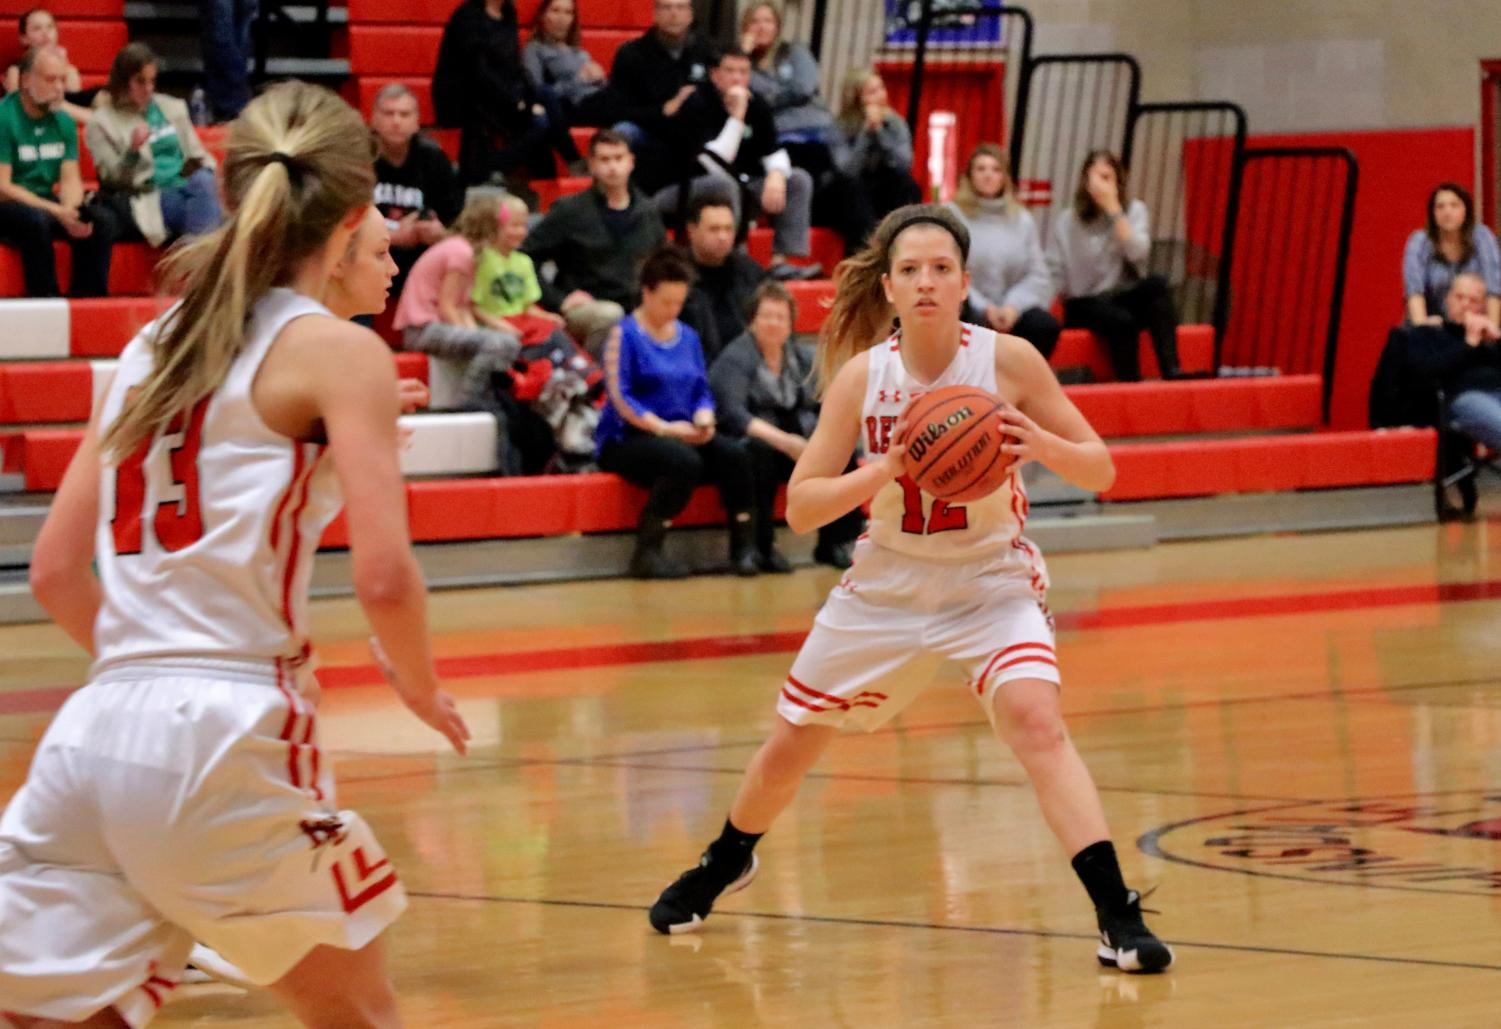 Madeline Bokich, senior, passes to her teammate Anna Howell, junior, during the game against York.